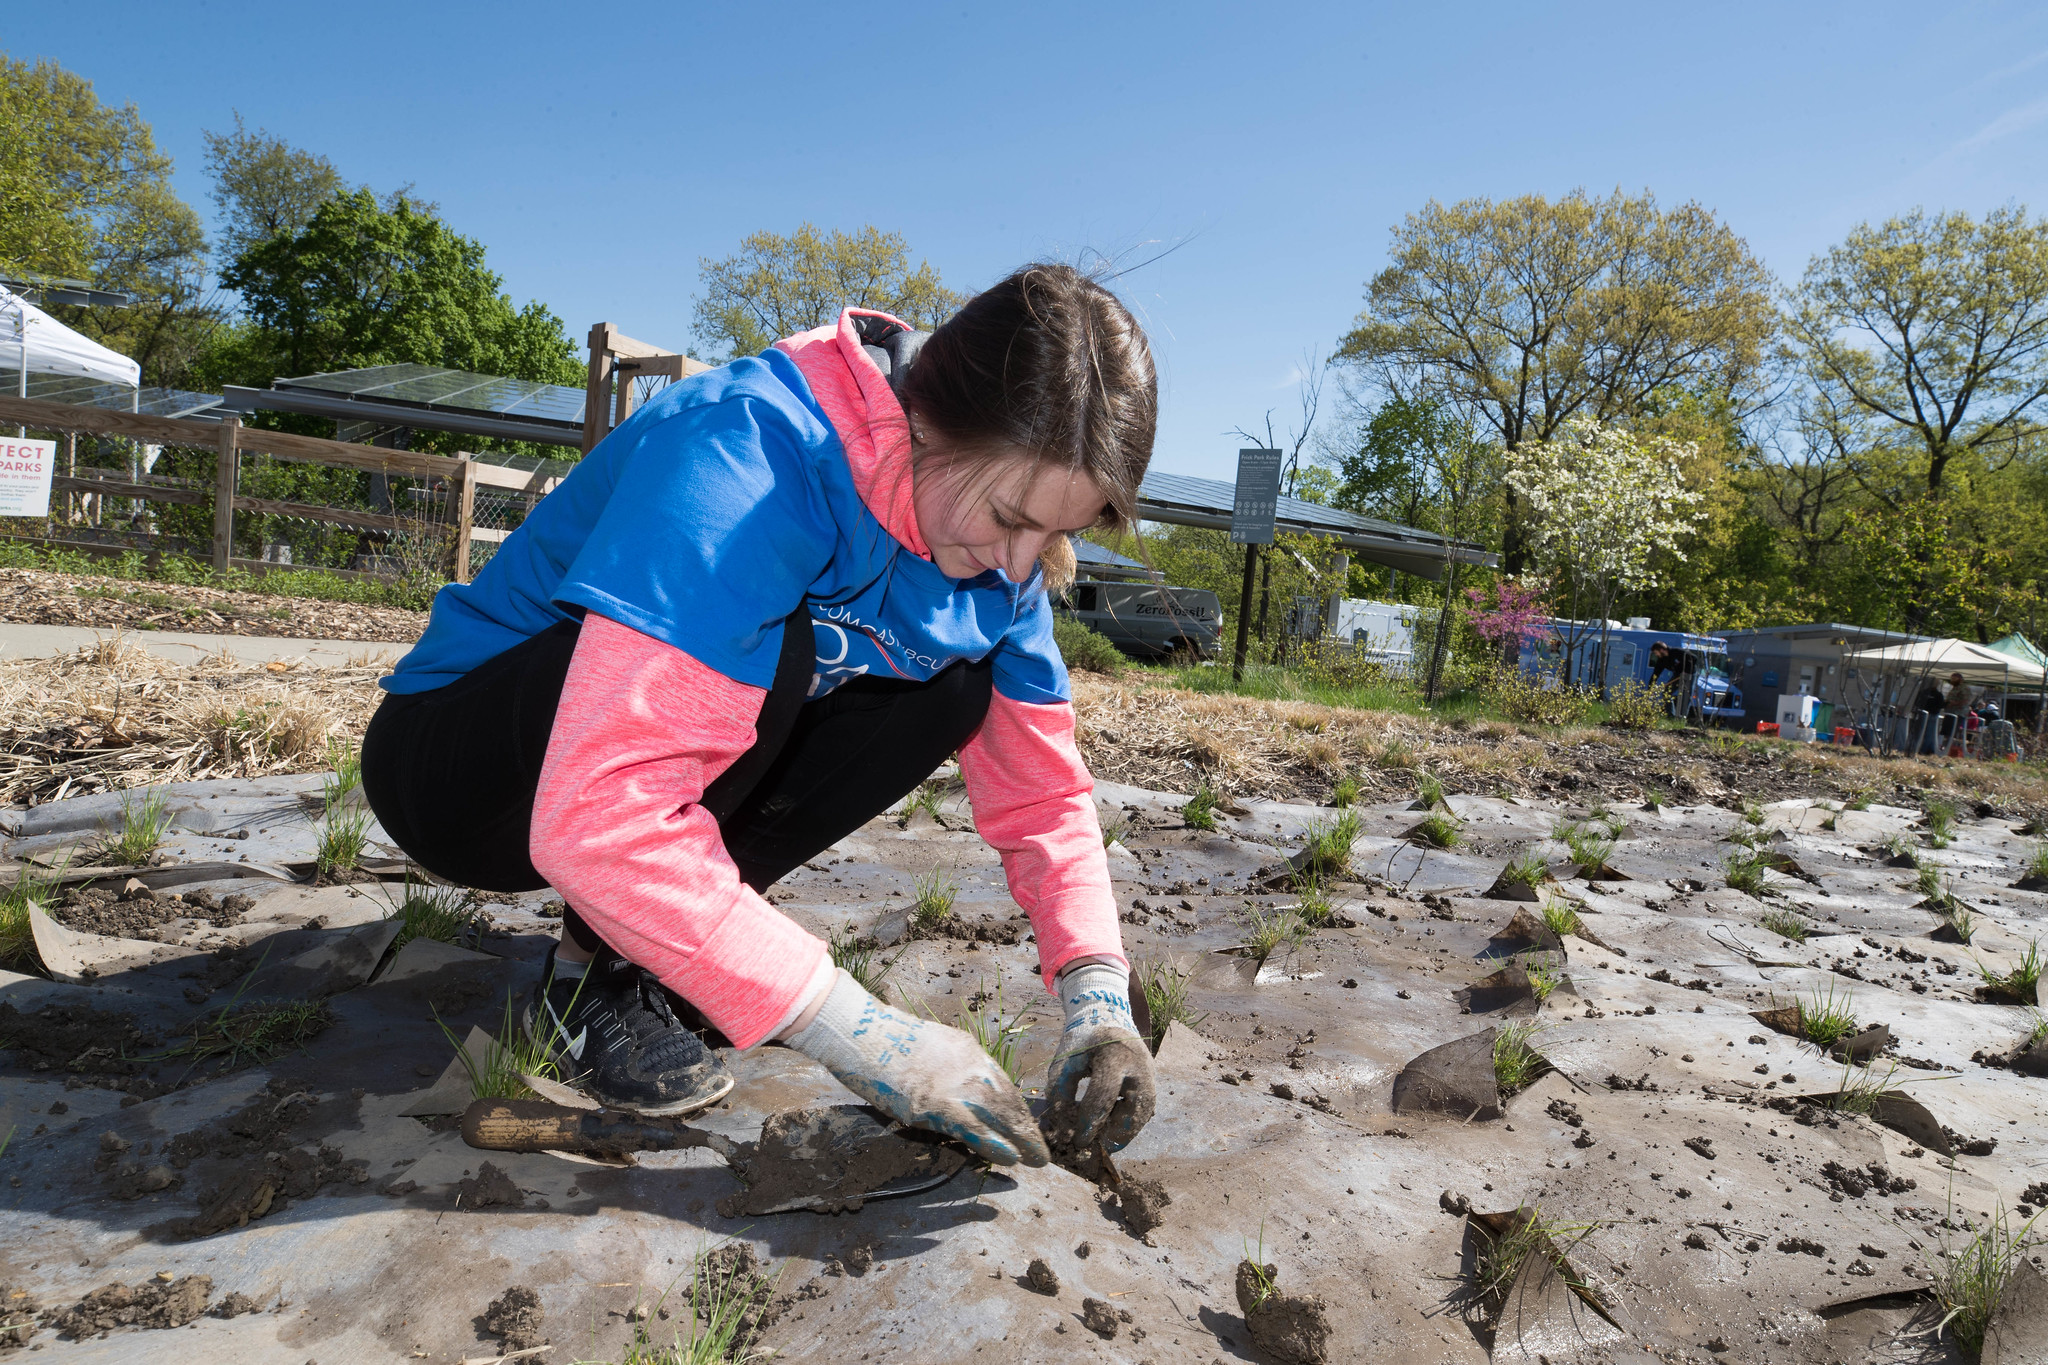 Young person planting in mud